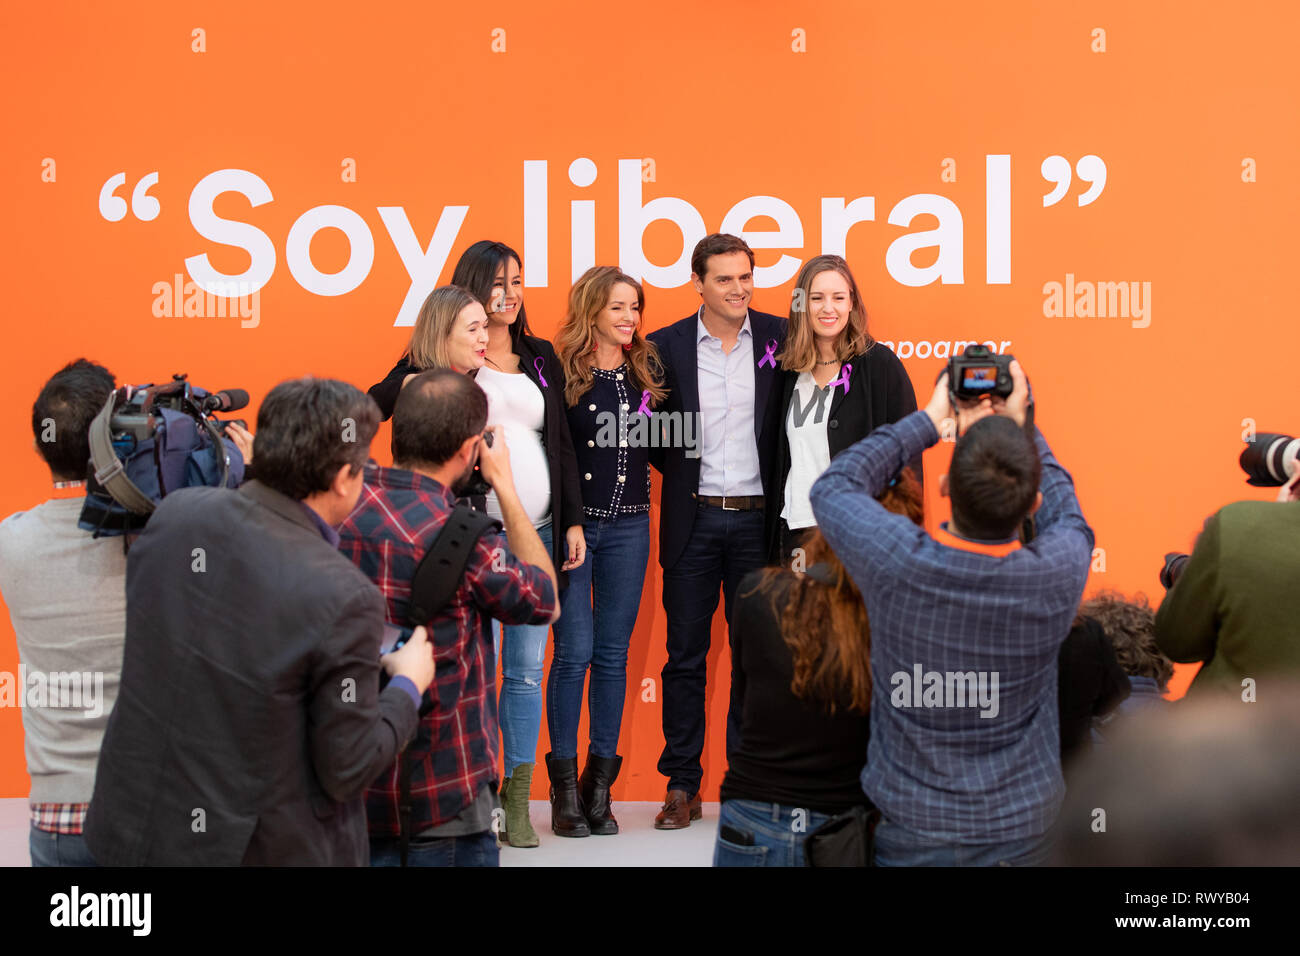 Madrid, Spain. 08th Mar, 2019. The president of Ciudadanos (Cs), Albert Rivera, accompanied by the head of the Women and LGTBI Area of the formation, Patricia Reyes (3L); the Secretary of Youth of Cs, Melisa Rodríguez (R); the candidate for mayor of Madrid and spokesperson for Cs Madrid, Begoña Villacís (2L); and the culture spokesperson of the party, Marta Rivera (1L) makes an institutional declaration on the occasion of Women's Day. In addition, you will discover a quote by Clara Campoamor written on one of the walls of the headquarters. Credit: Jesús Hellin/Alamy Live News - Stock Image